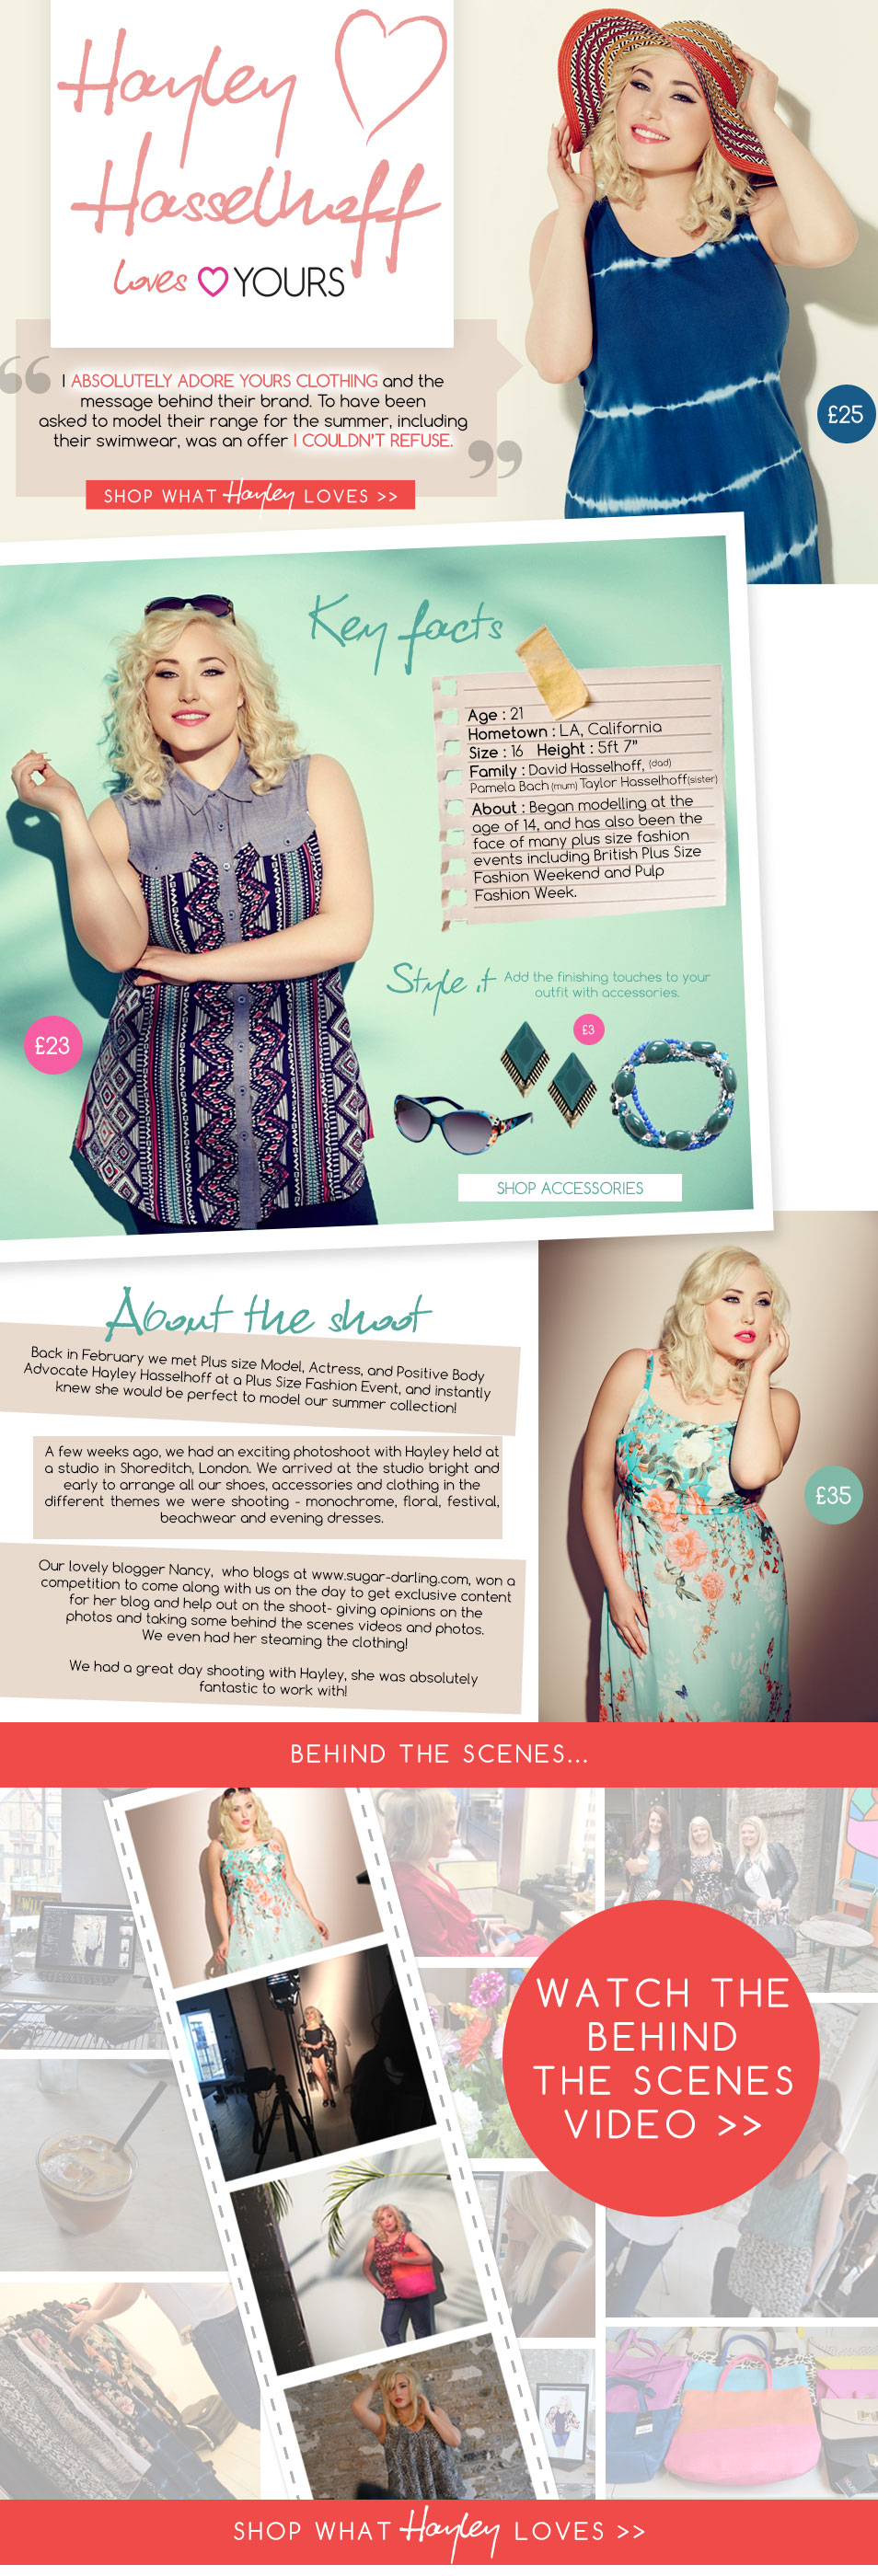 Hayley Hasselhoff for Yours Clothing